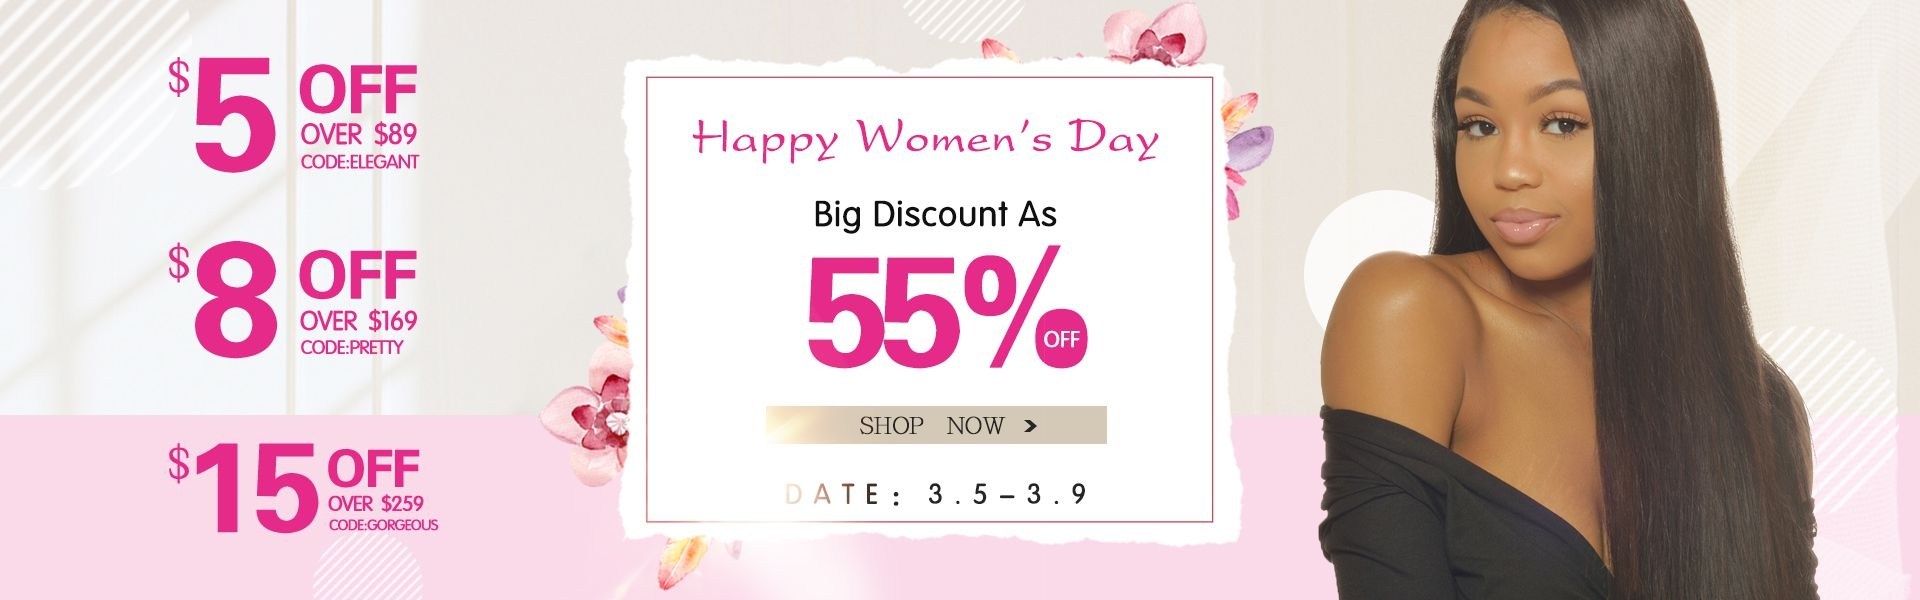 africanmall womens day promotion of huamna hair clothes and bags